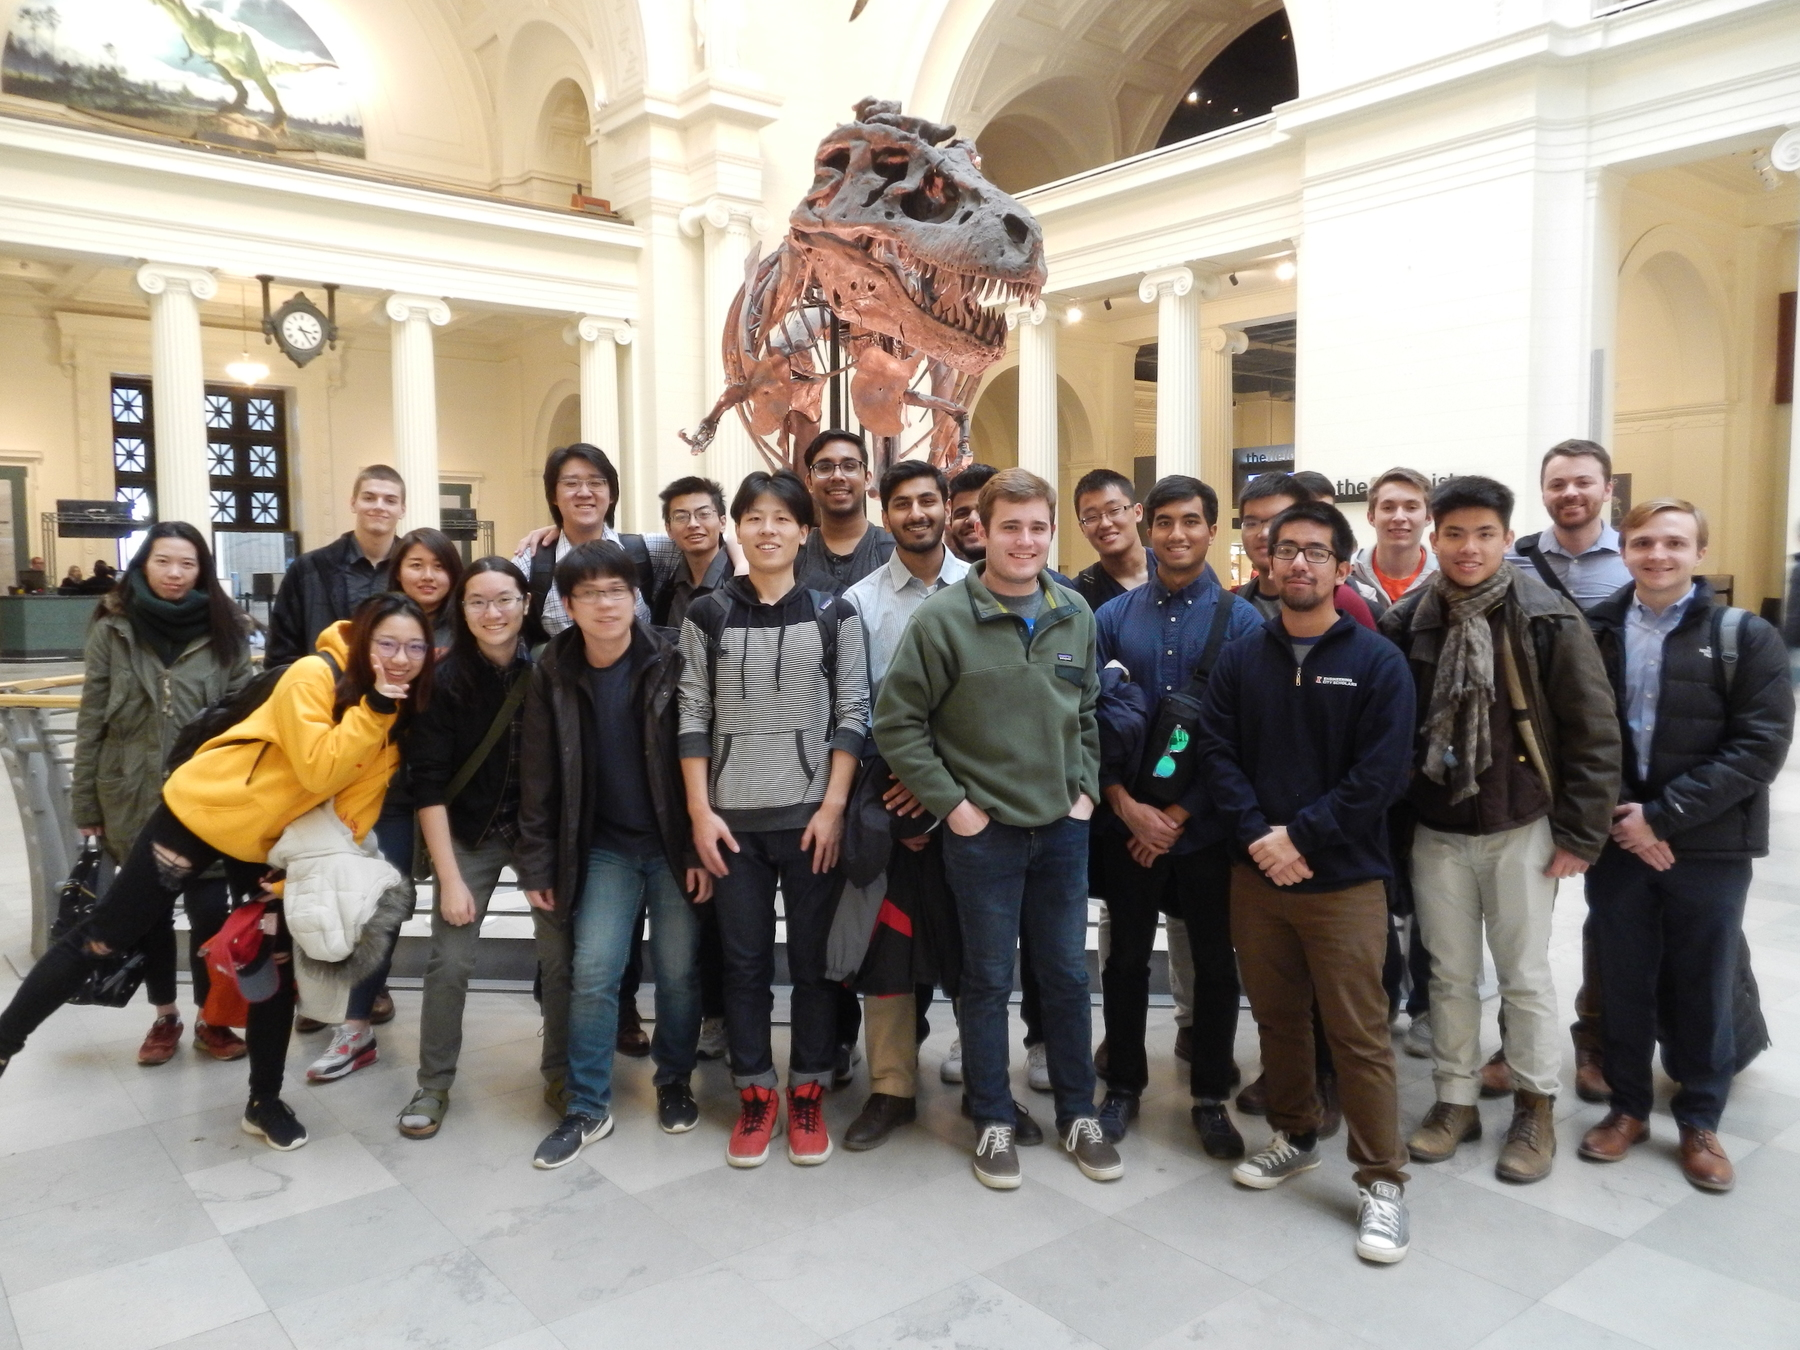 group of students with Sue the T-Rex